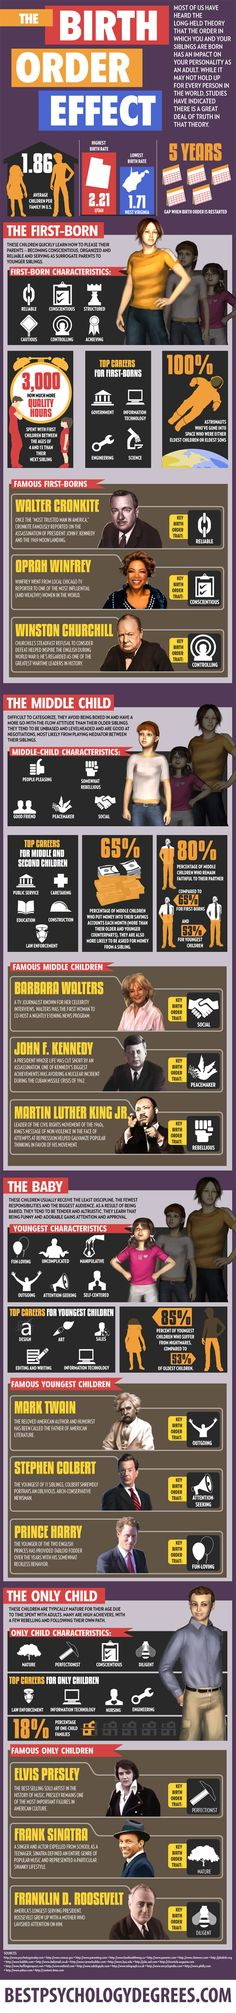 Impact of Birth Order on Personality : This infographic addresses the theory that's been around for centuries, according to which the birth order partially or strongly affects the personality of the individual. Does this ring true with your family?   > http://infographicsmania.com/impact-of-birth-order-on-personality/?utm_source=Pinterest&utm_medium=ZAKKAS&utm_campaign=SNAP